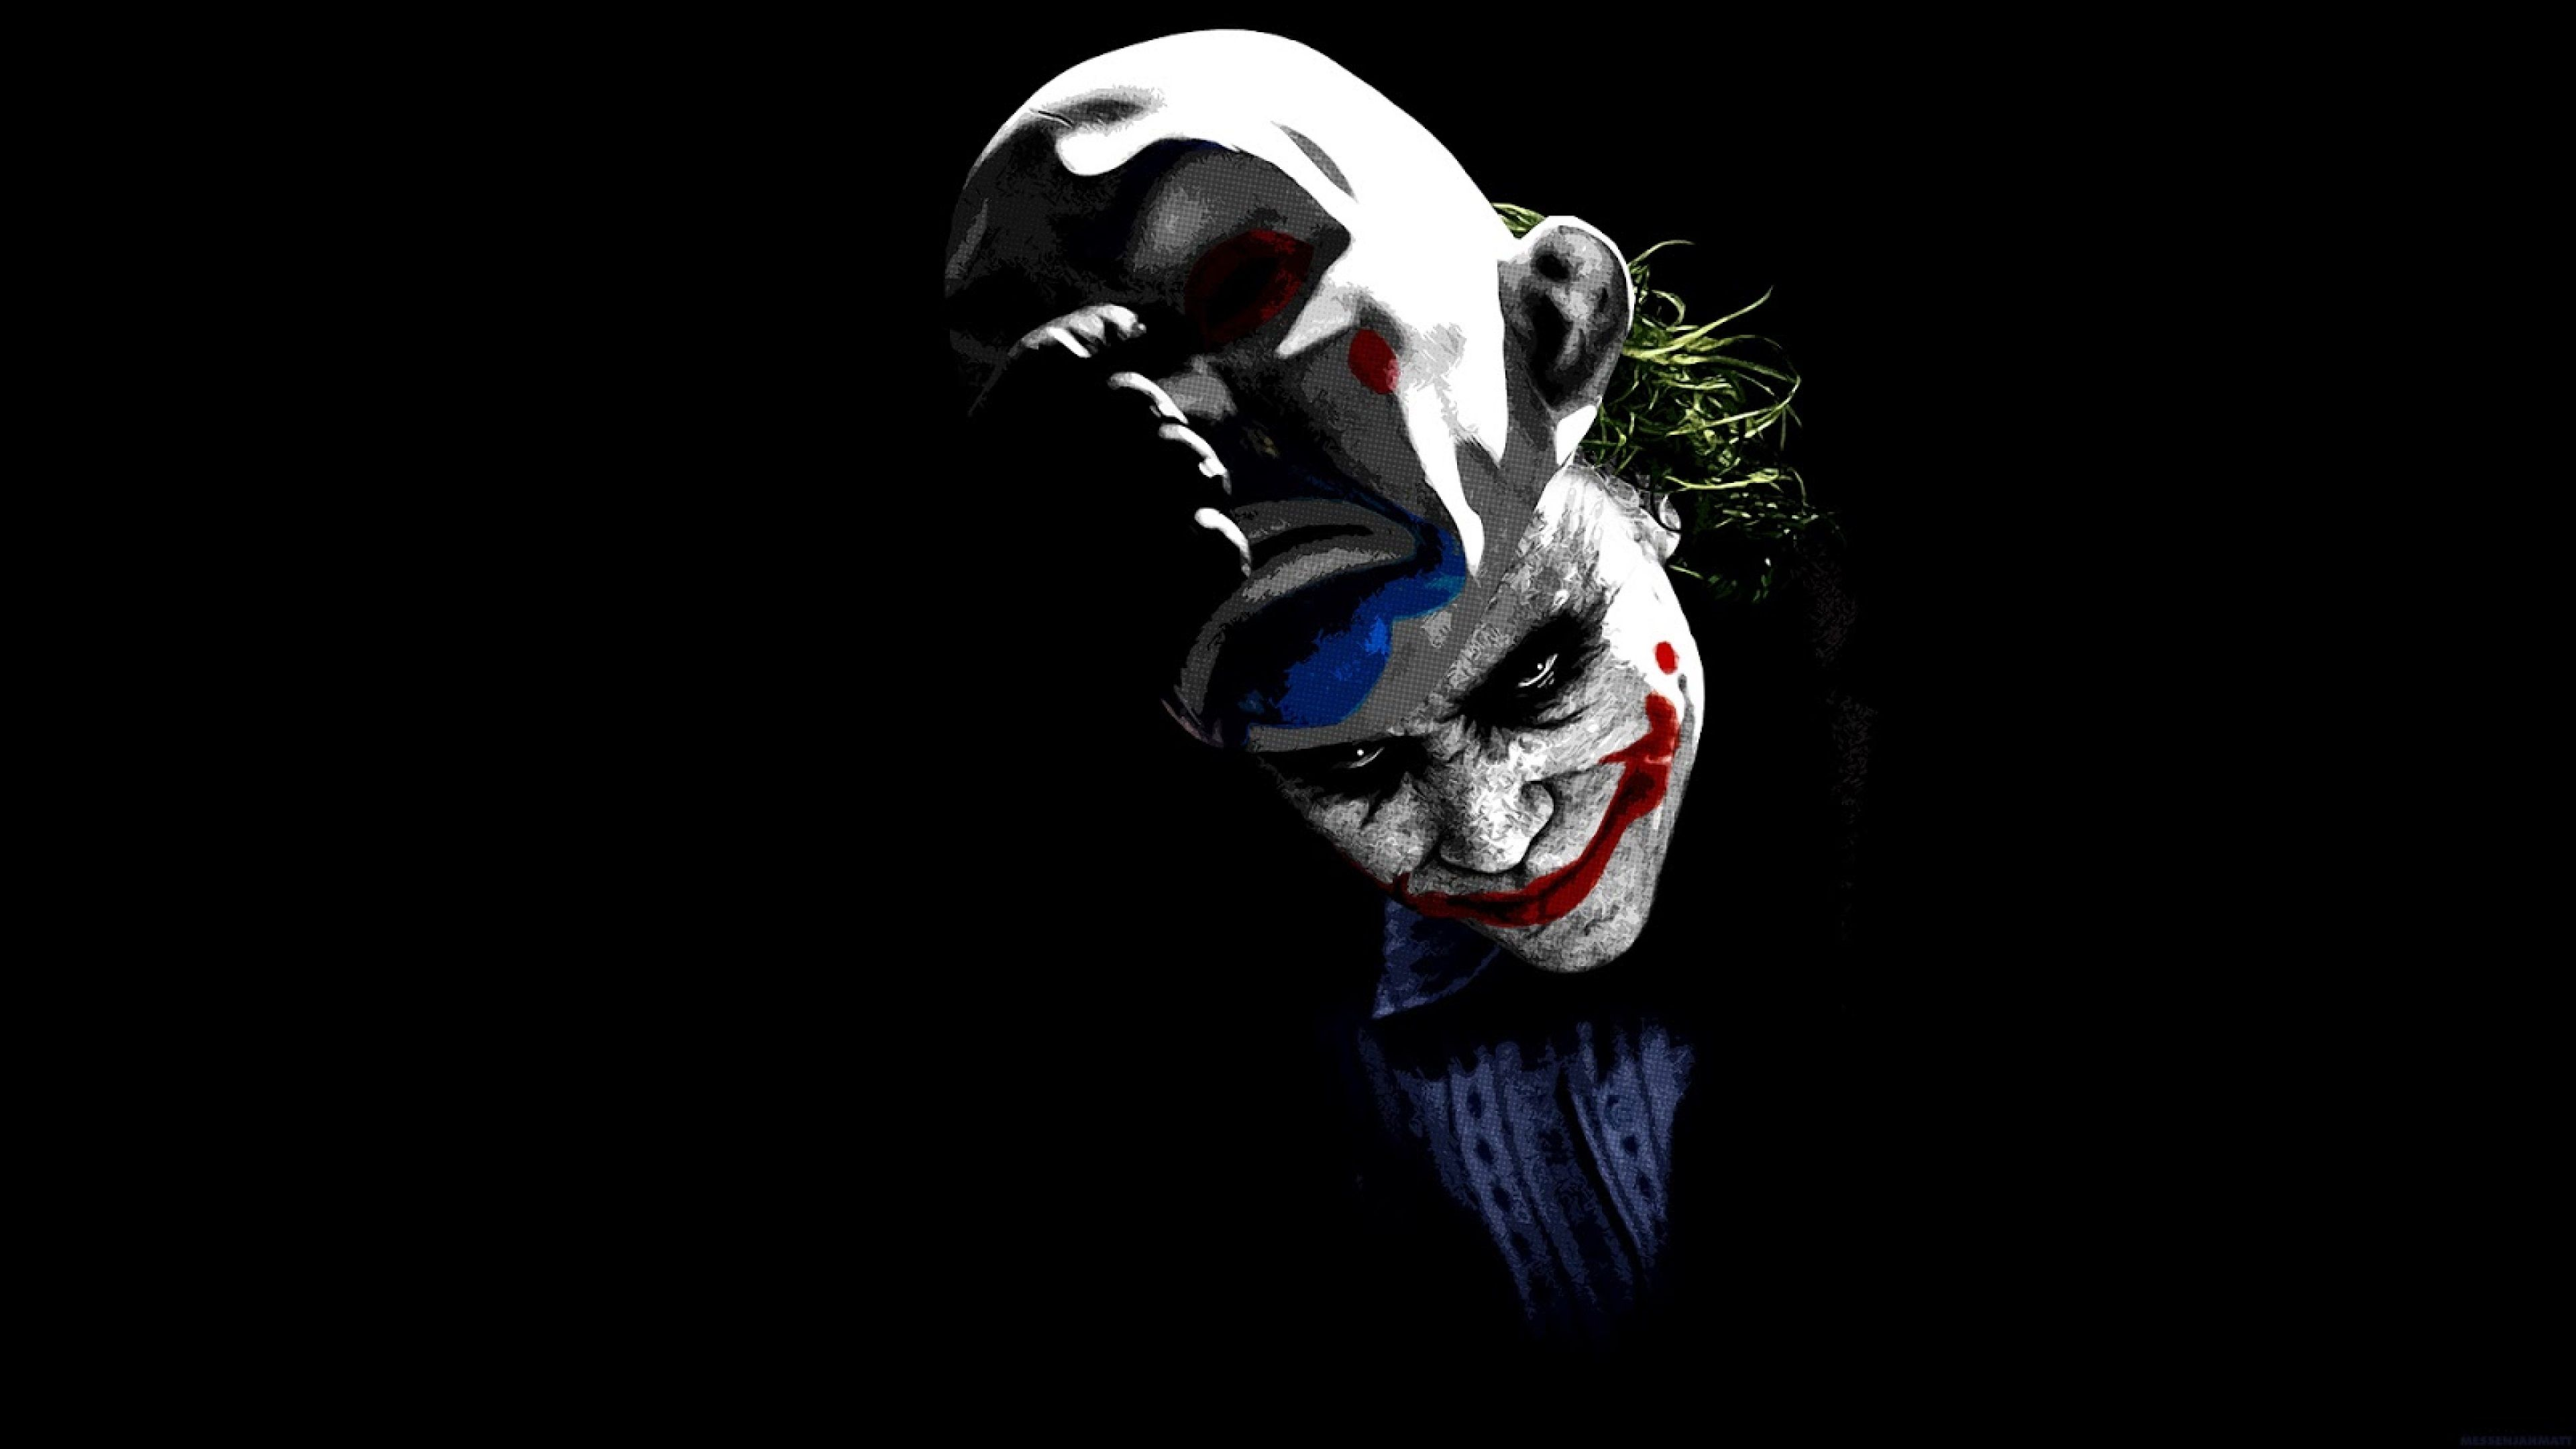 3840x2160 Joker 4k Pc Desktop Wallpaper Hd Joker Joker